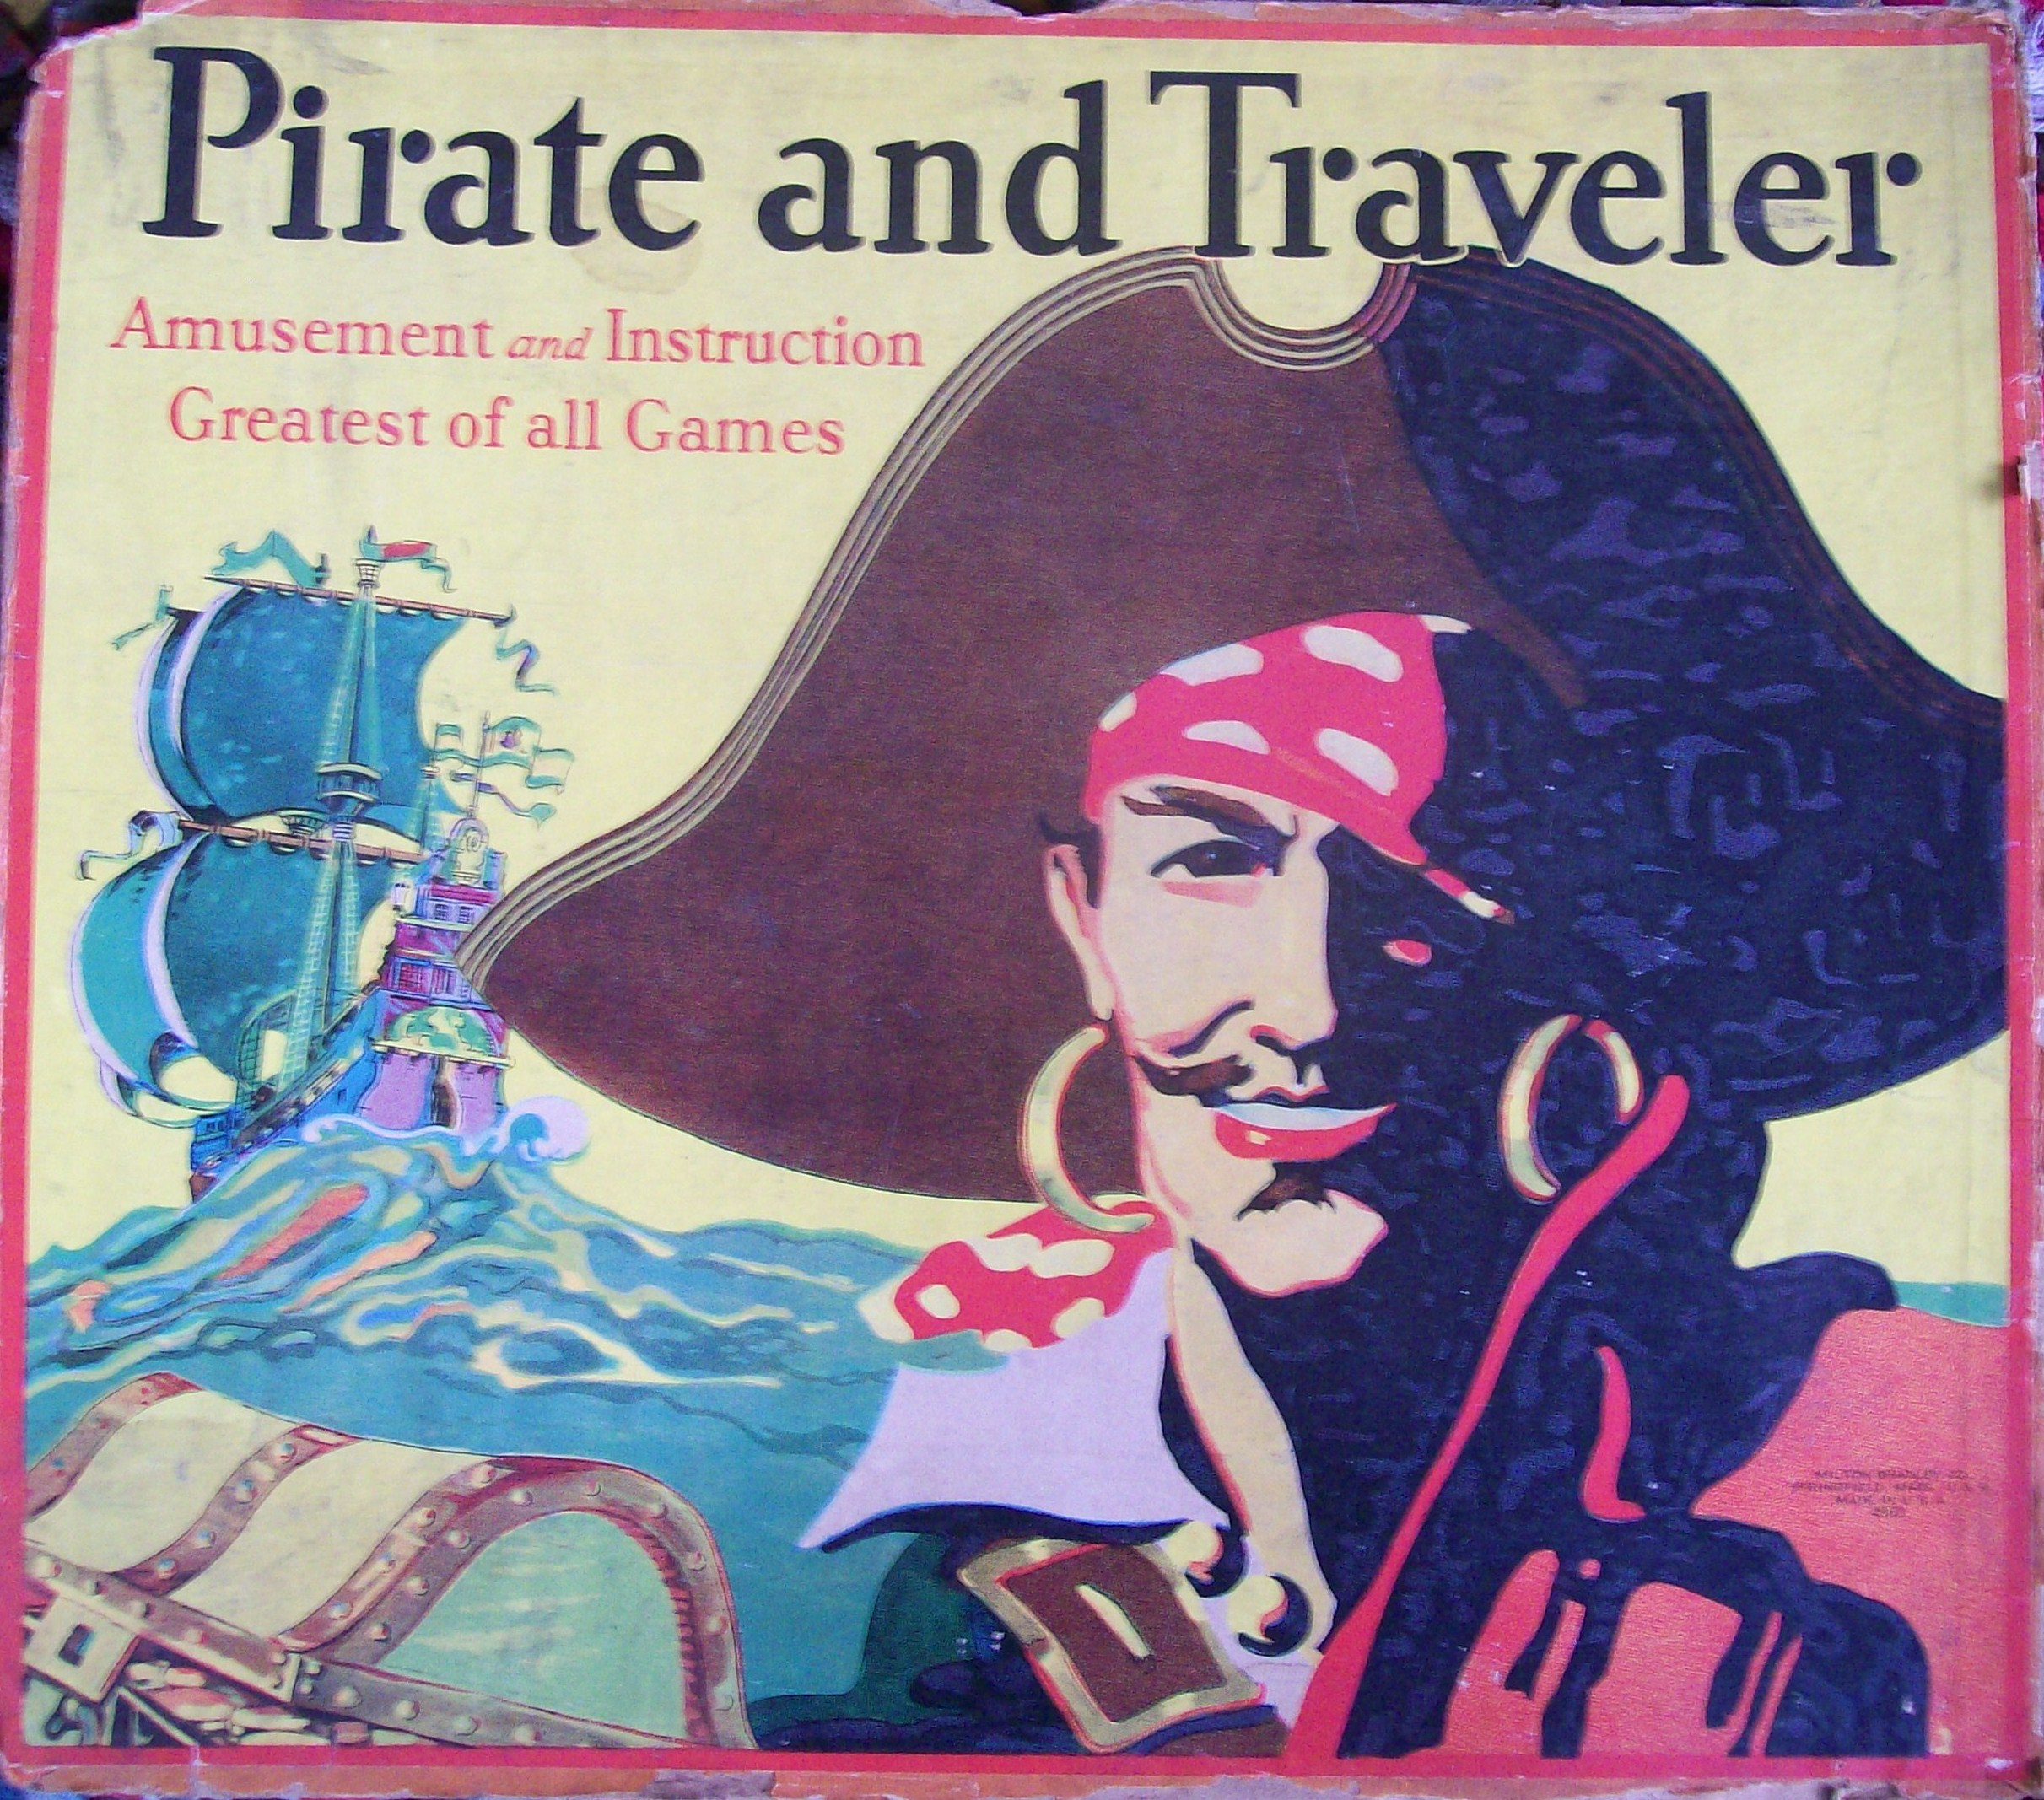 milton bradley 1911 pirate and traveler board game box